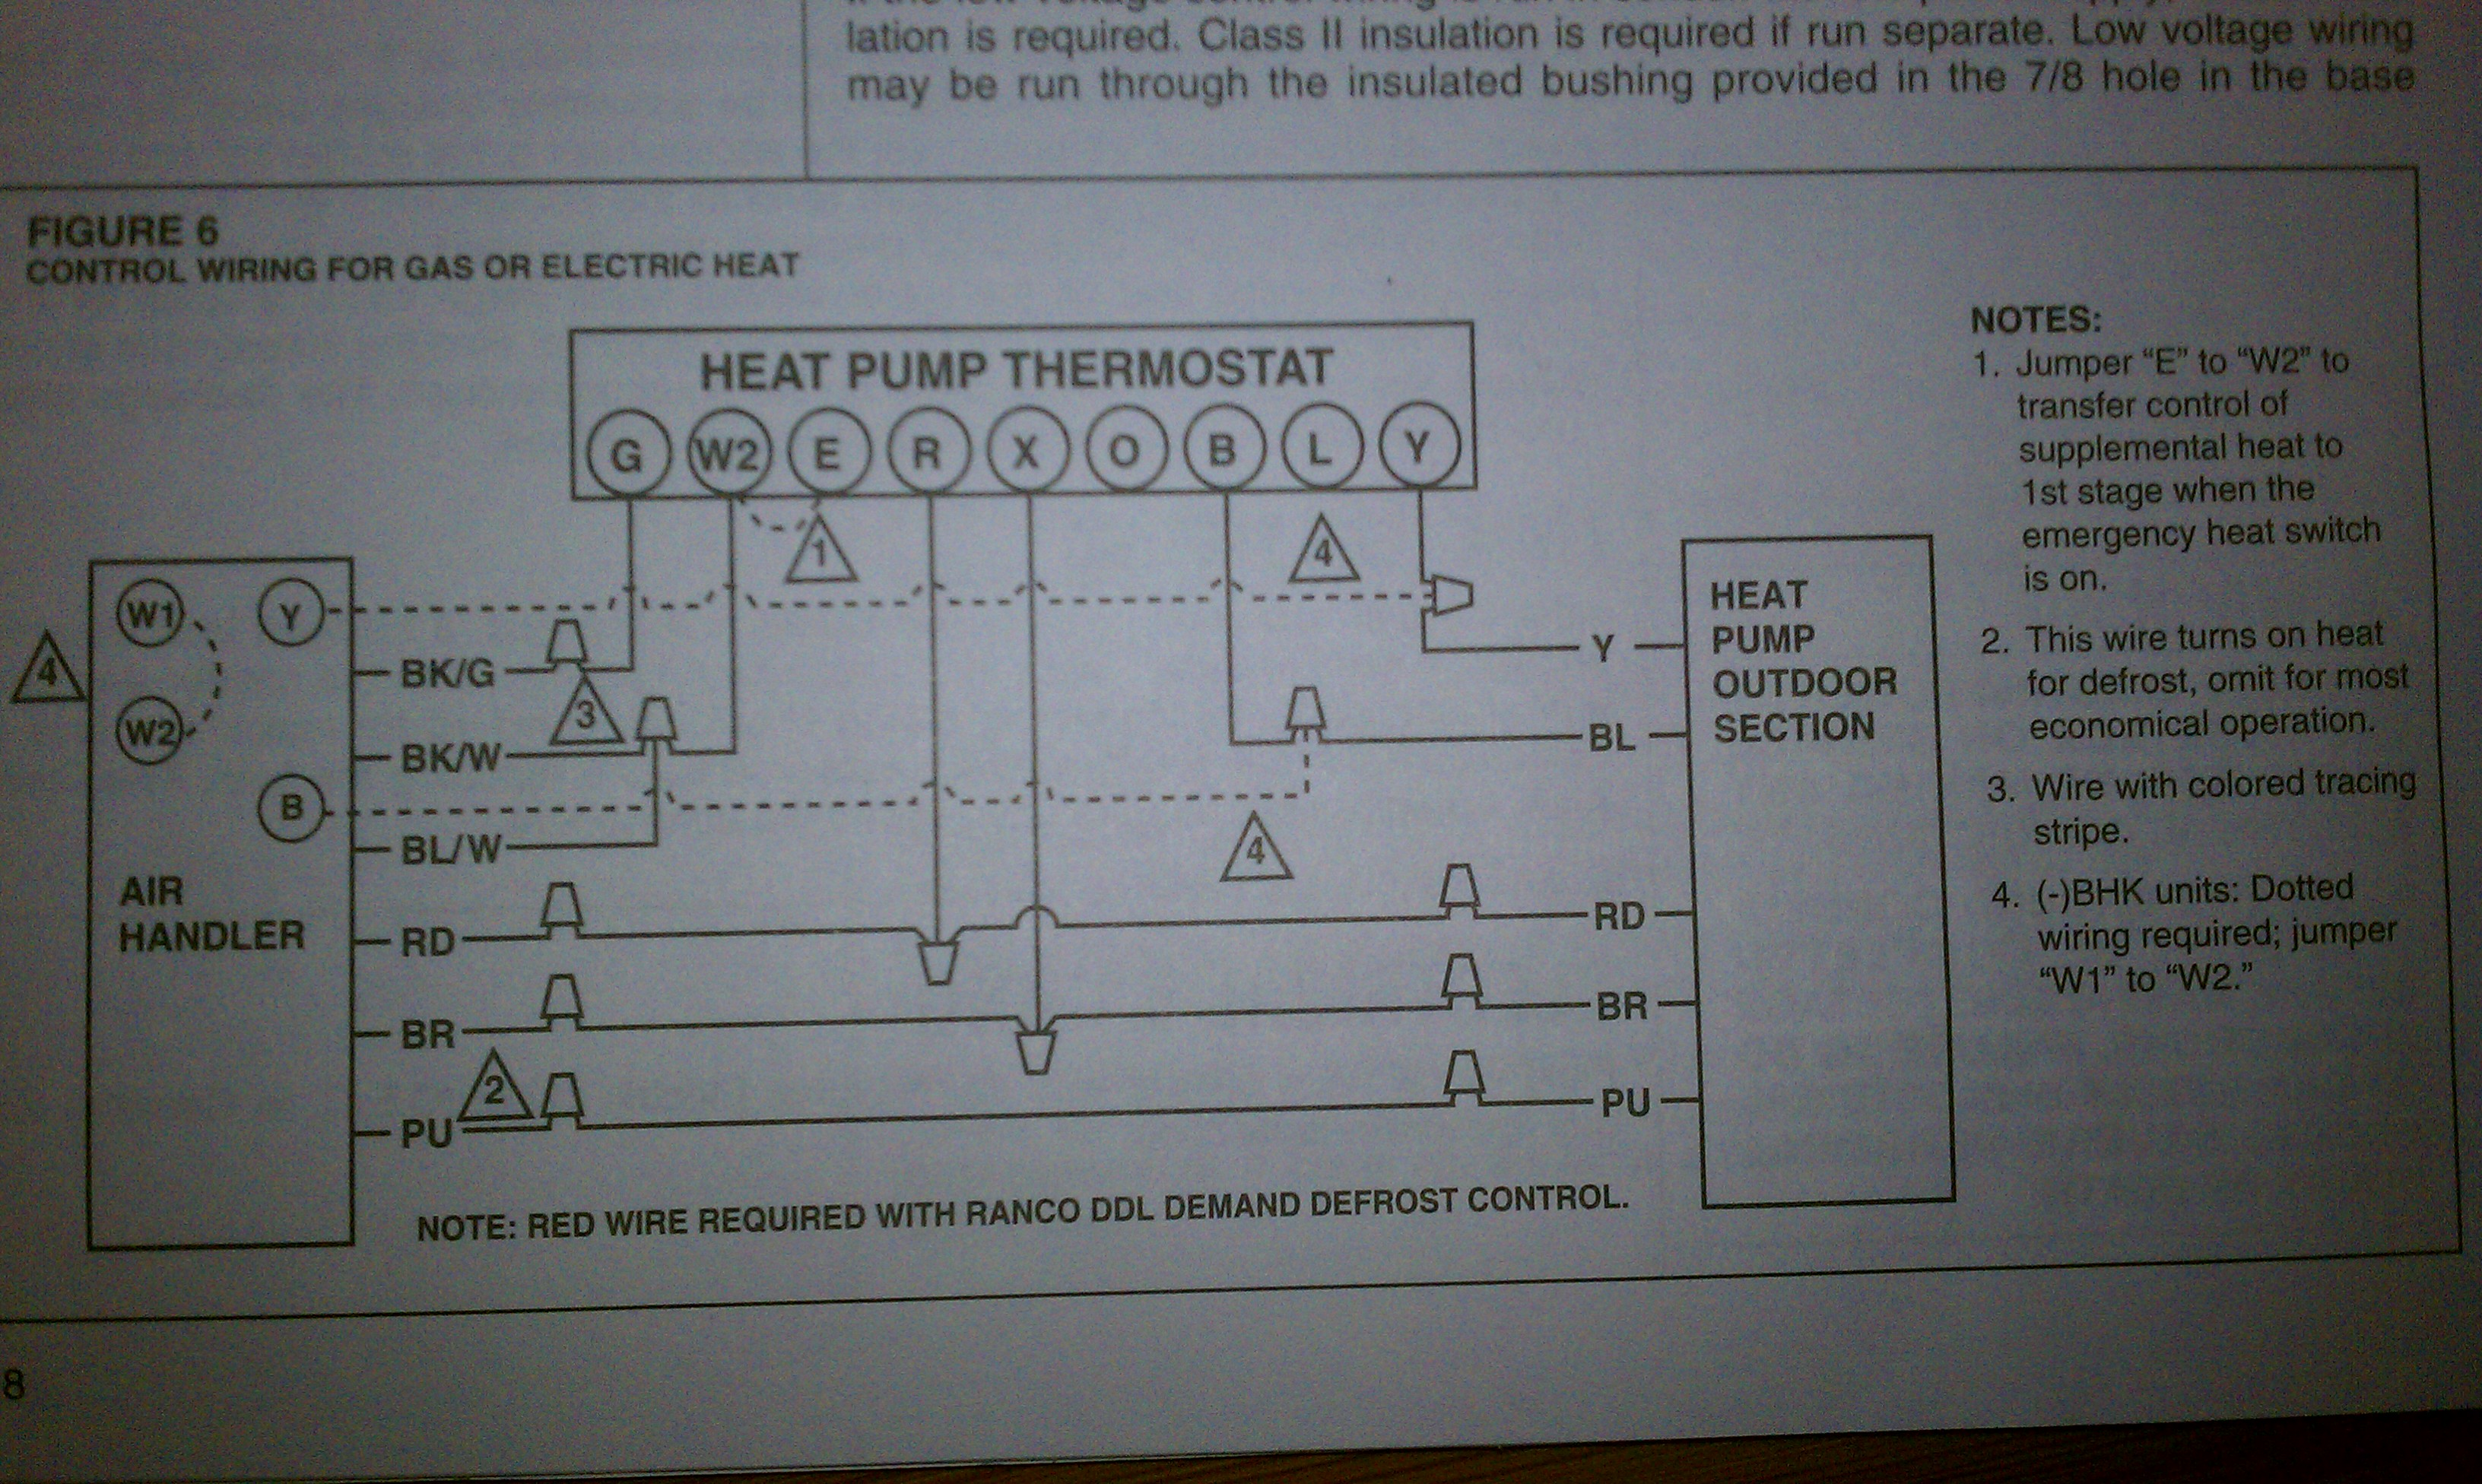 Dorable Rheem Gas Furnace Wiring Diagram Pictures - Everything You ...